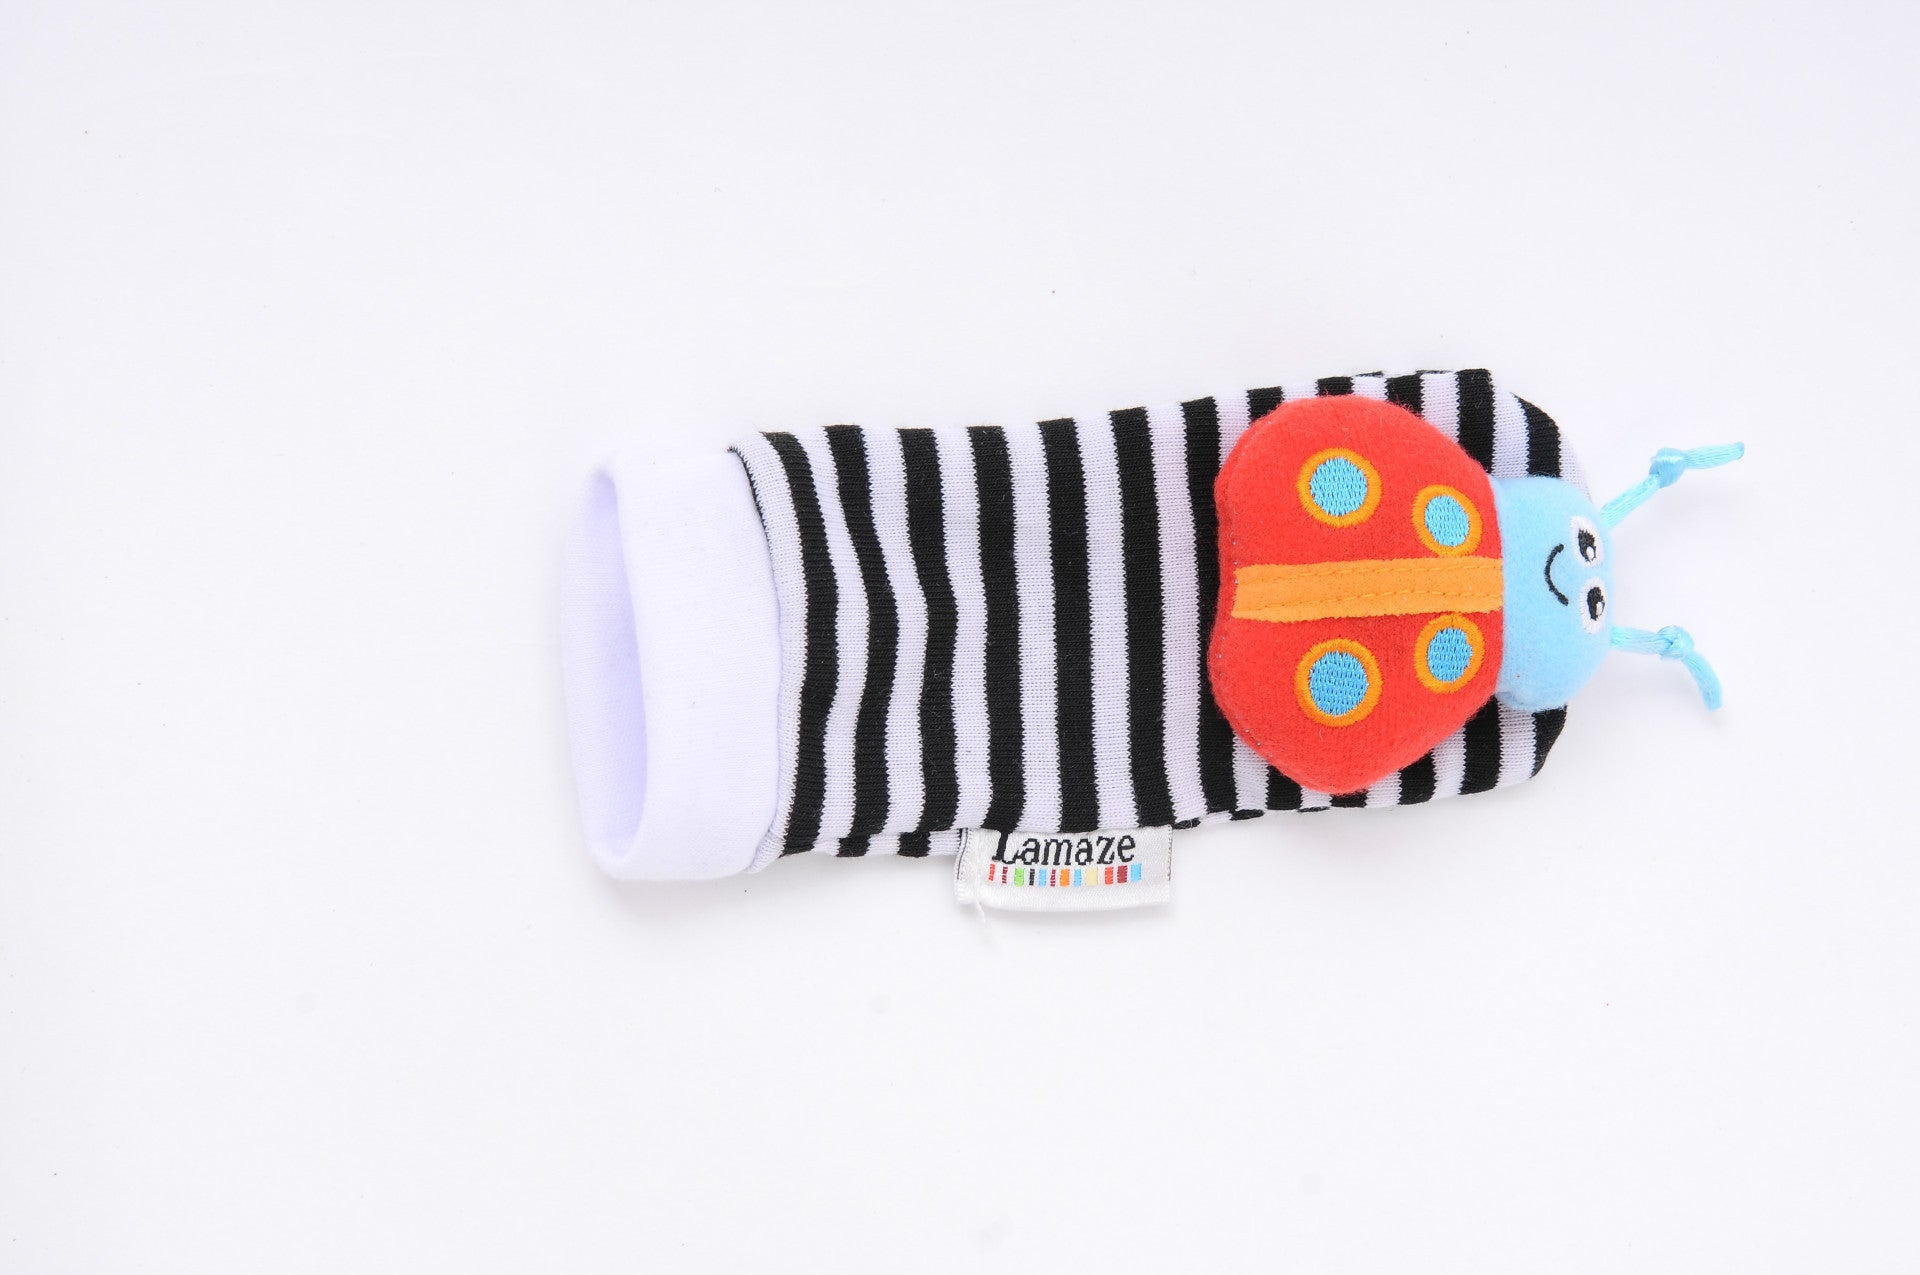 A baby _ baby baby socks strap with a wrist watch with a single price